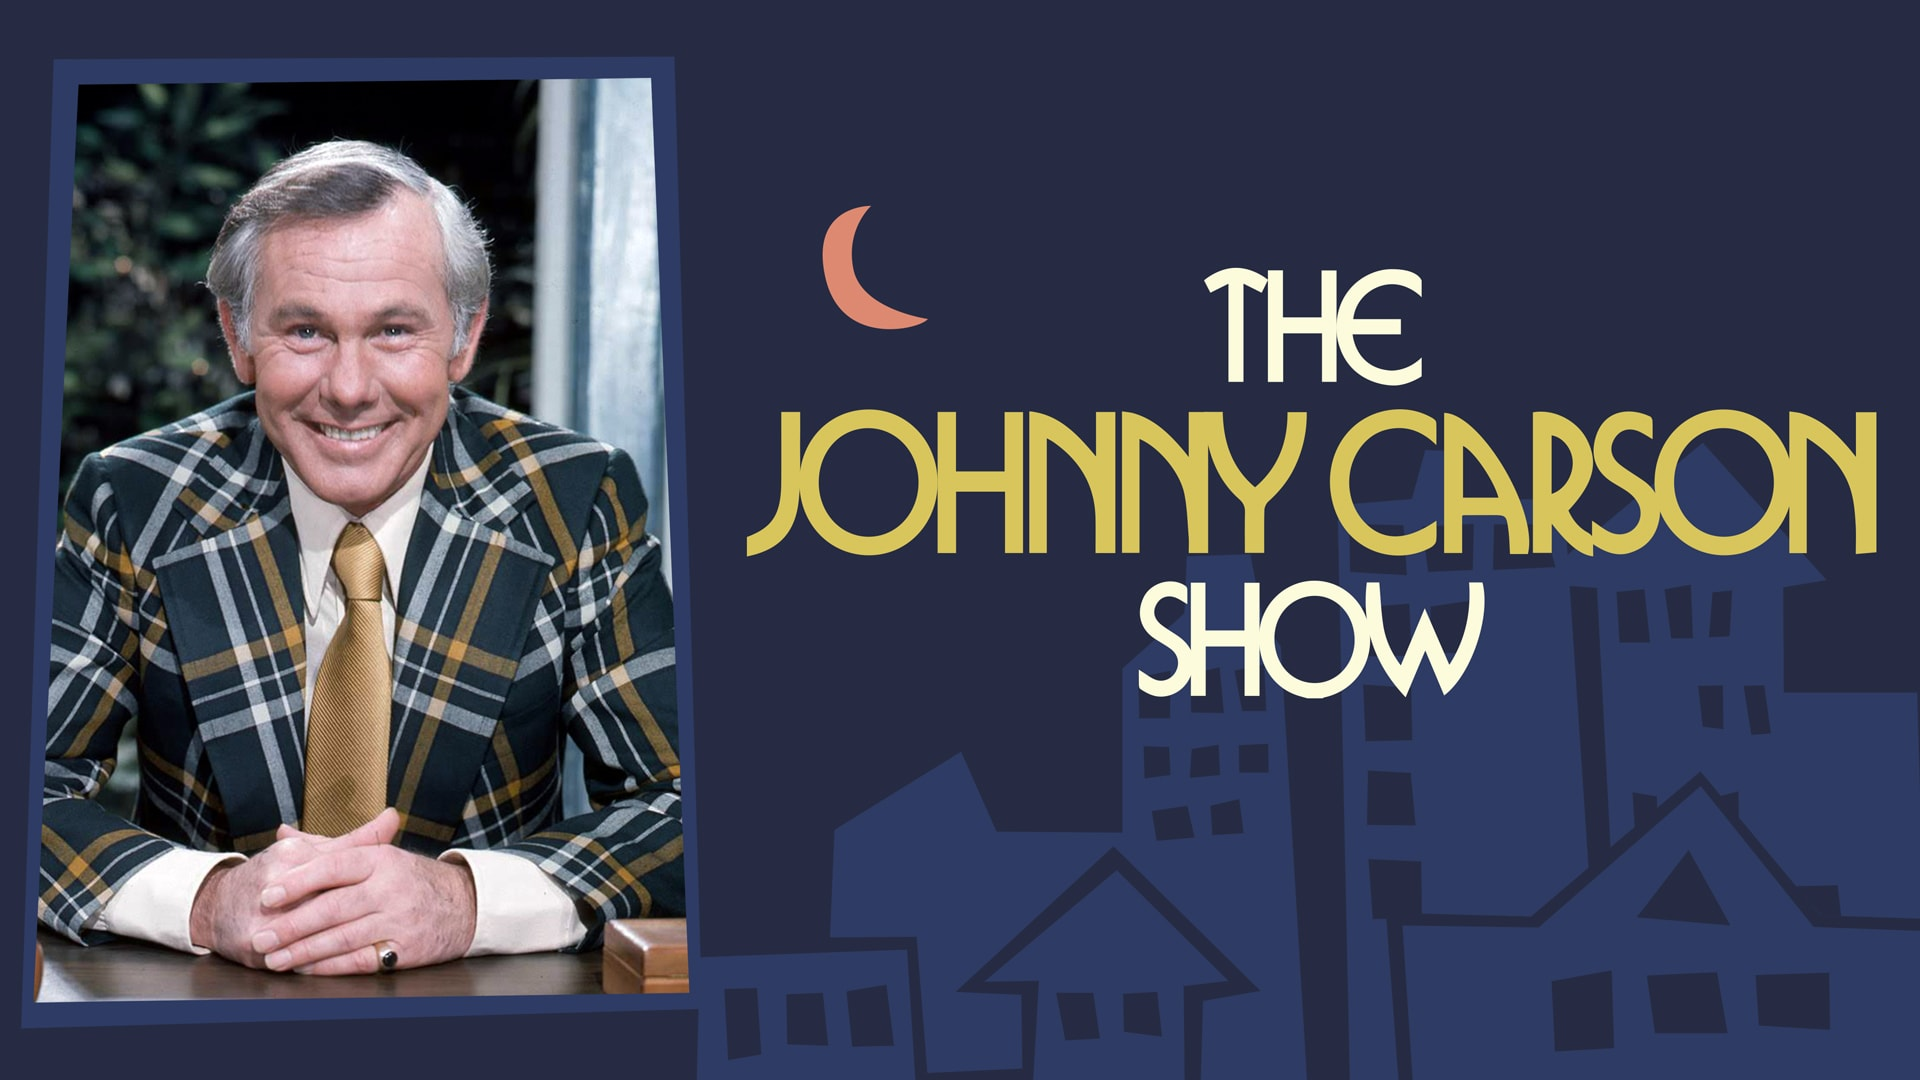 The Johnny Carson Show: Comic Legends Of The '60s - Dom Deluise (9/6/73)